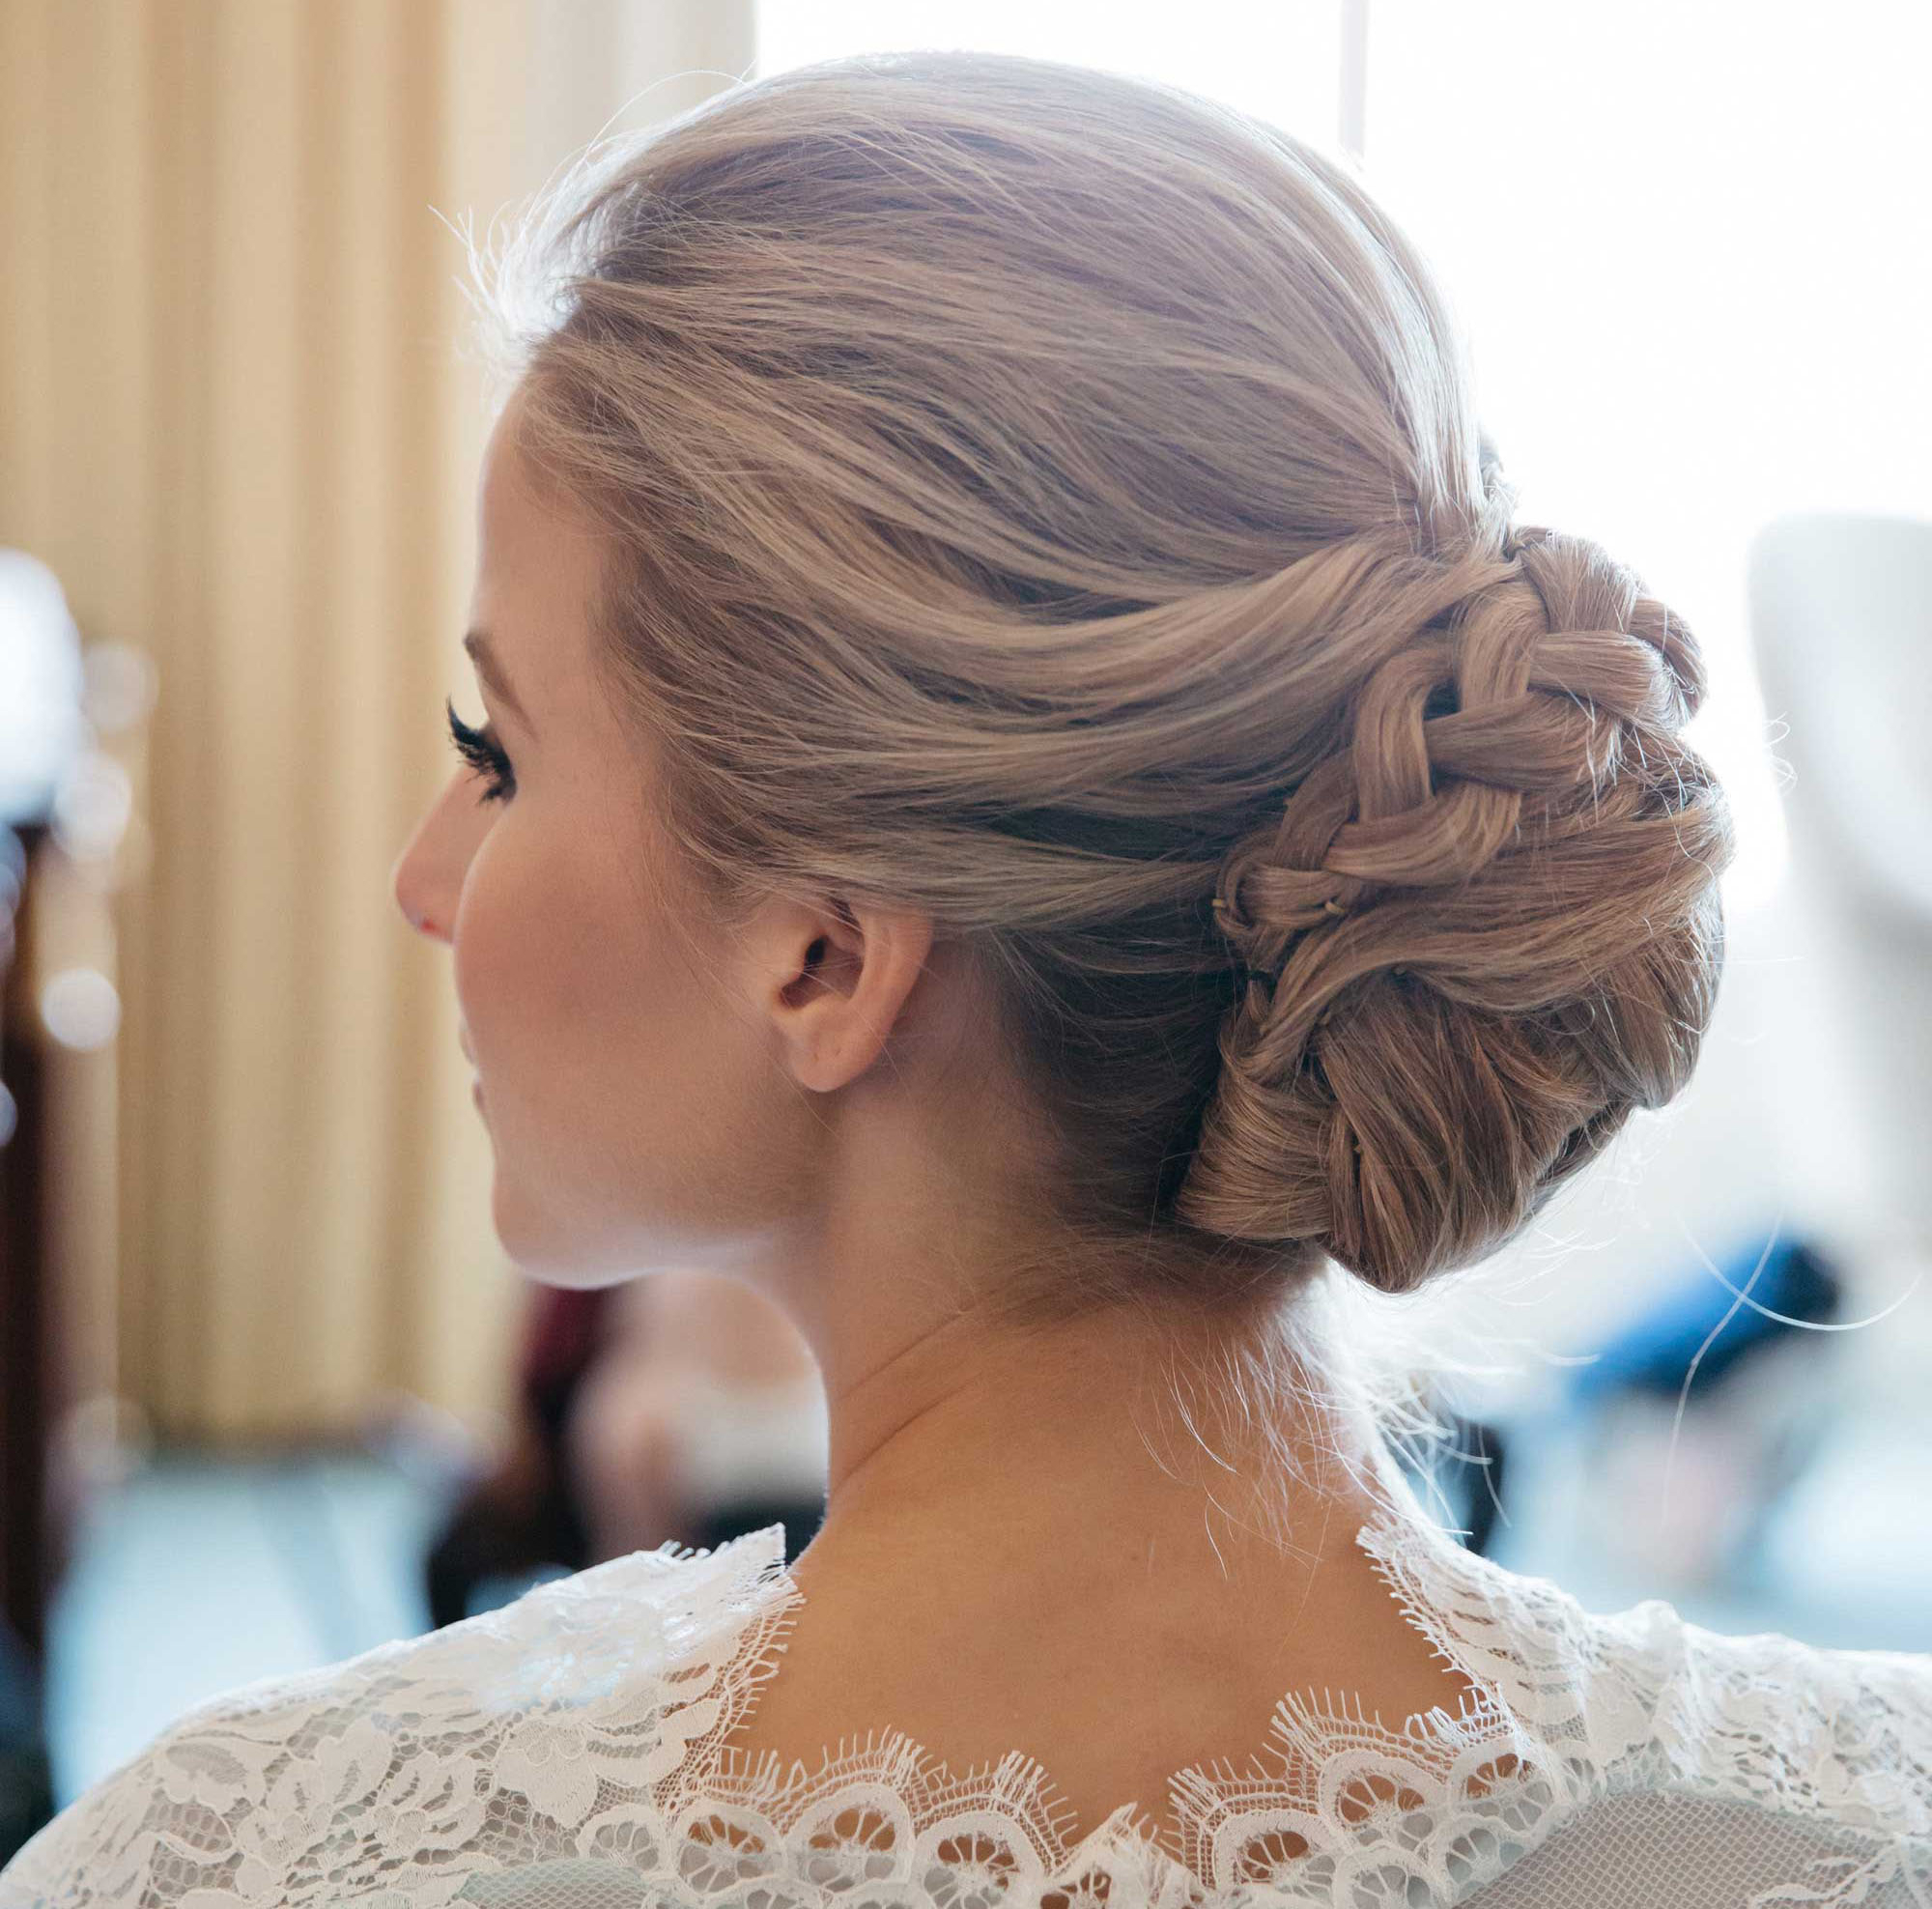 Braided Hairstyles: 5 Ideas For Your Wedding Look – Inside Weddings In Preferred Crown Braid, Bouffant And Headpiece Bridal Hairstyles (View 4 of 20)